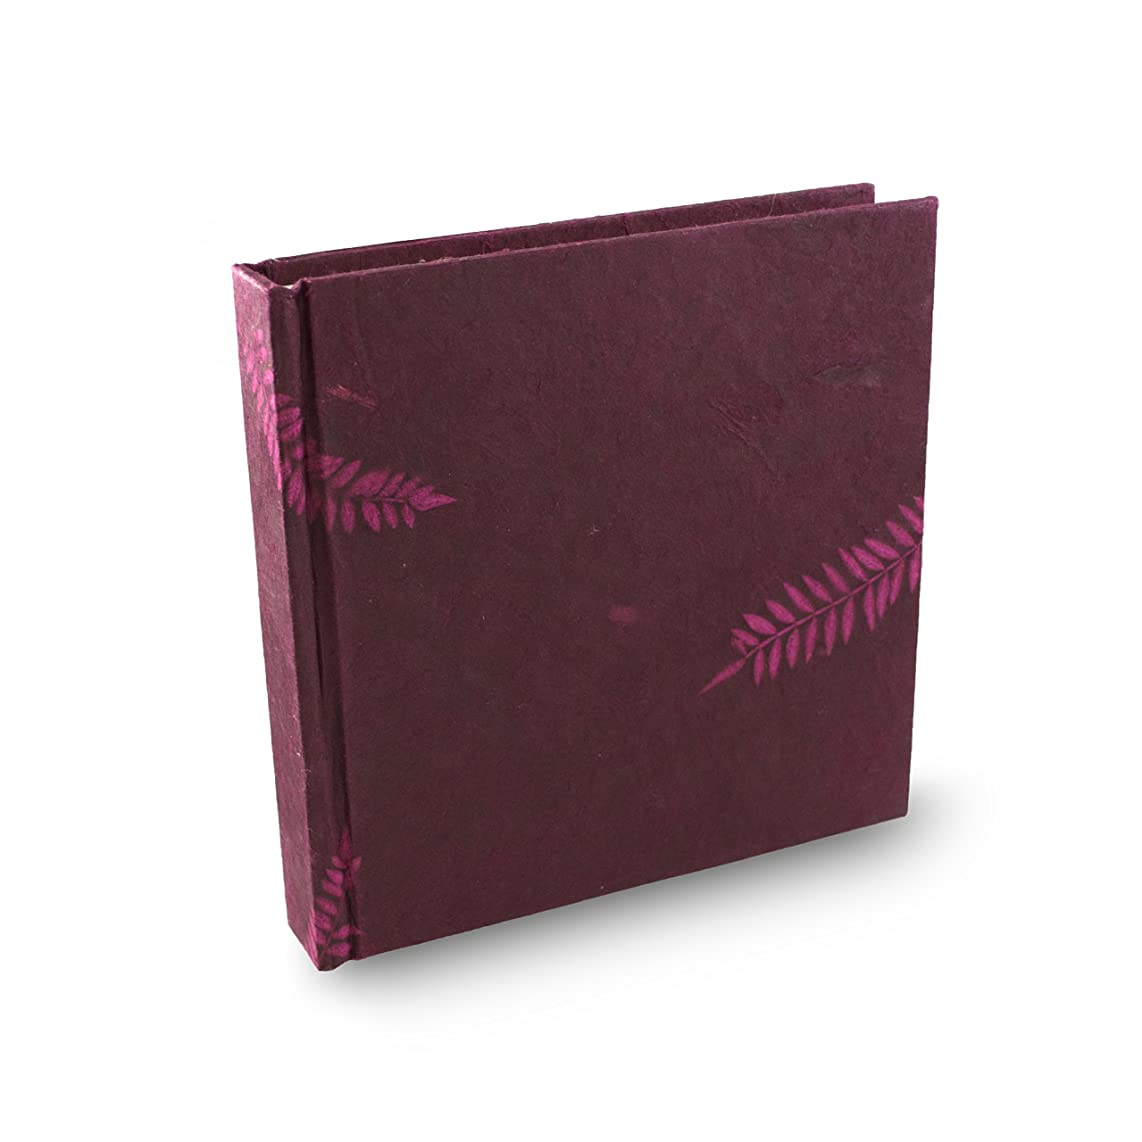 Eight Rivers Eco Fern Leaf Journal with Handmade Lokta Paper. 6x6 Inches. Made in Nepal. (Fuchsia Rose)